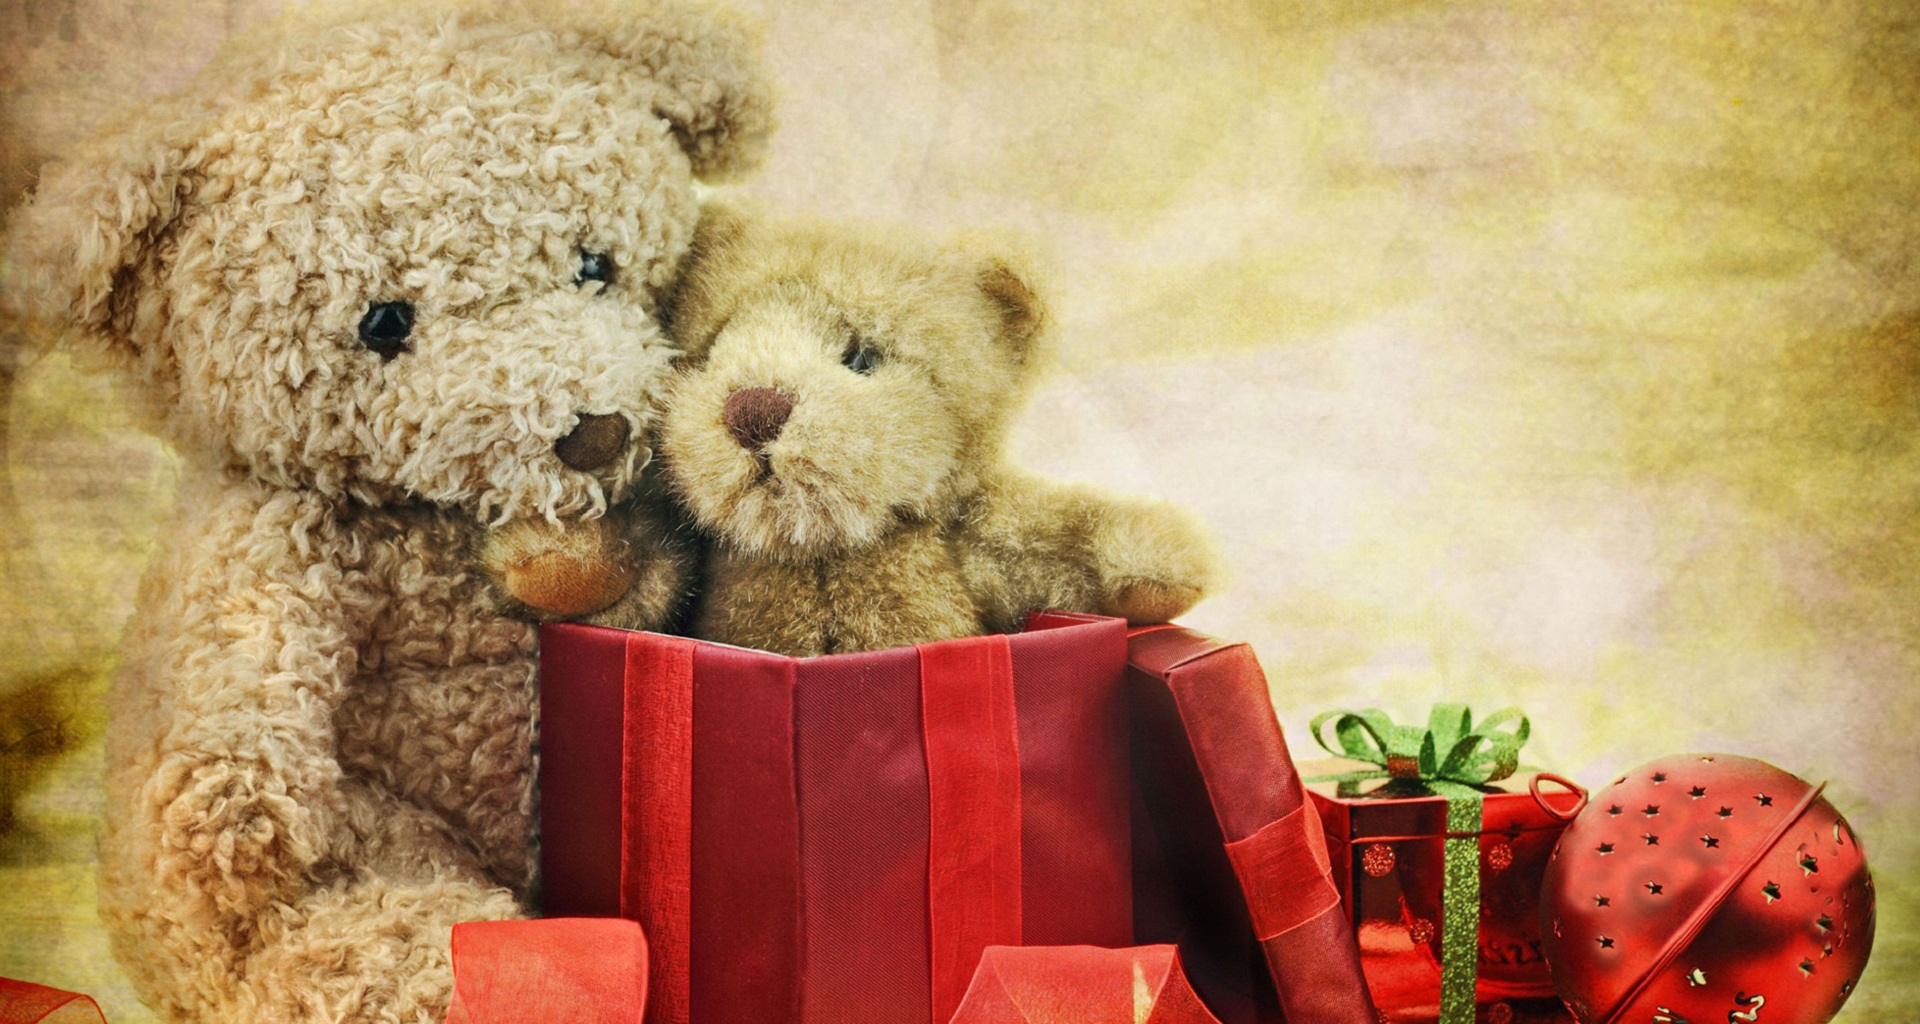 Teddy Bear Wallpaper For Desktop Free Download Happy New Year 2019